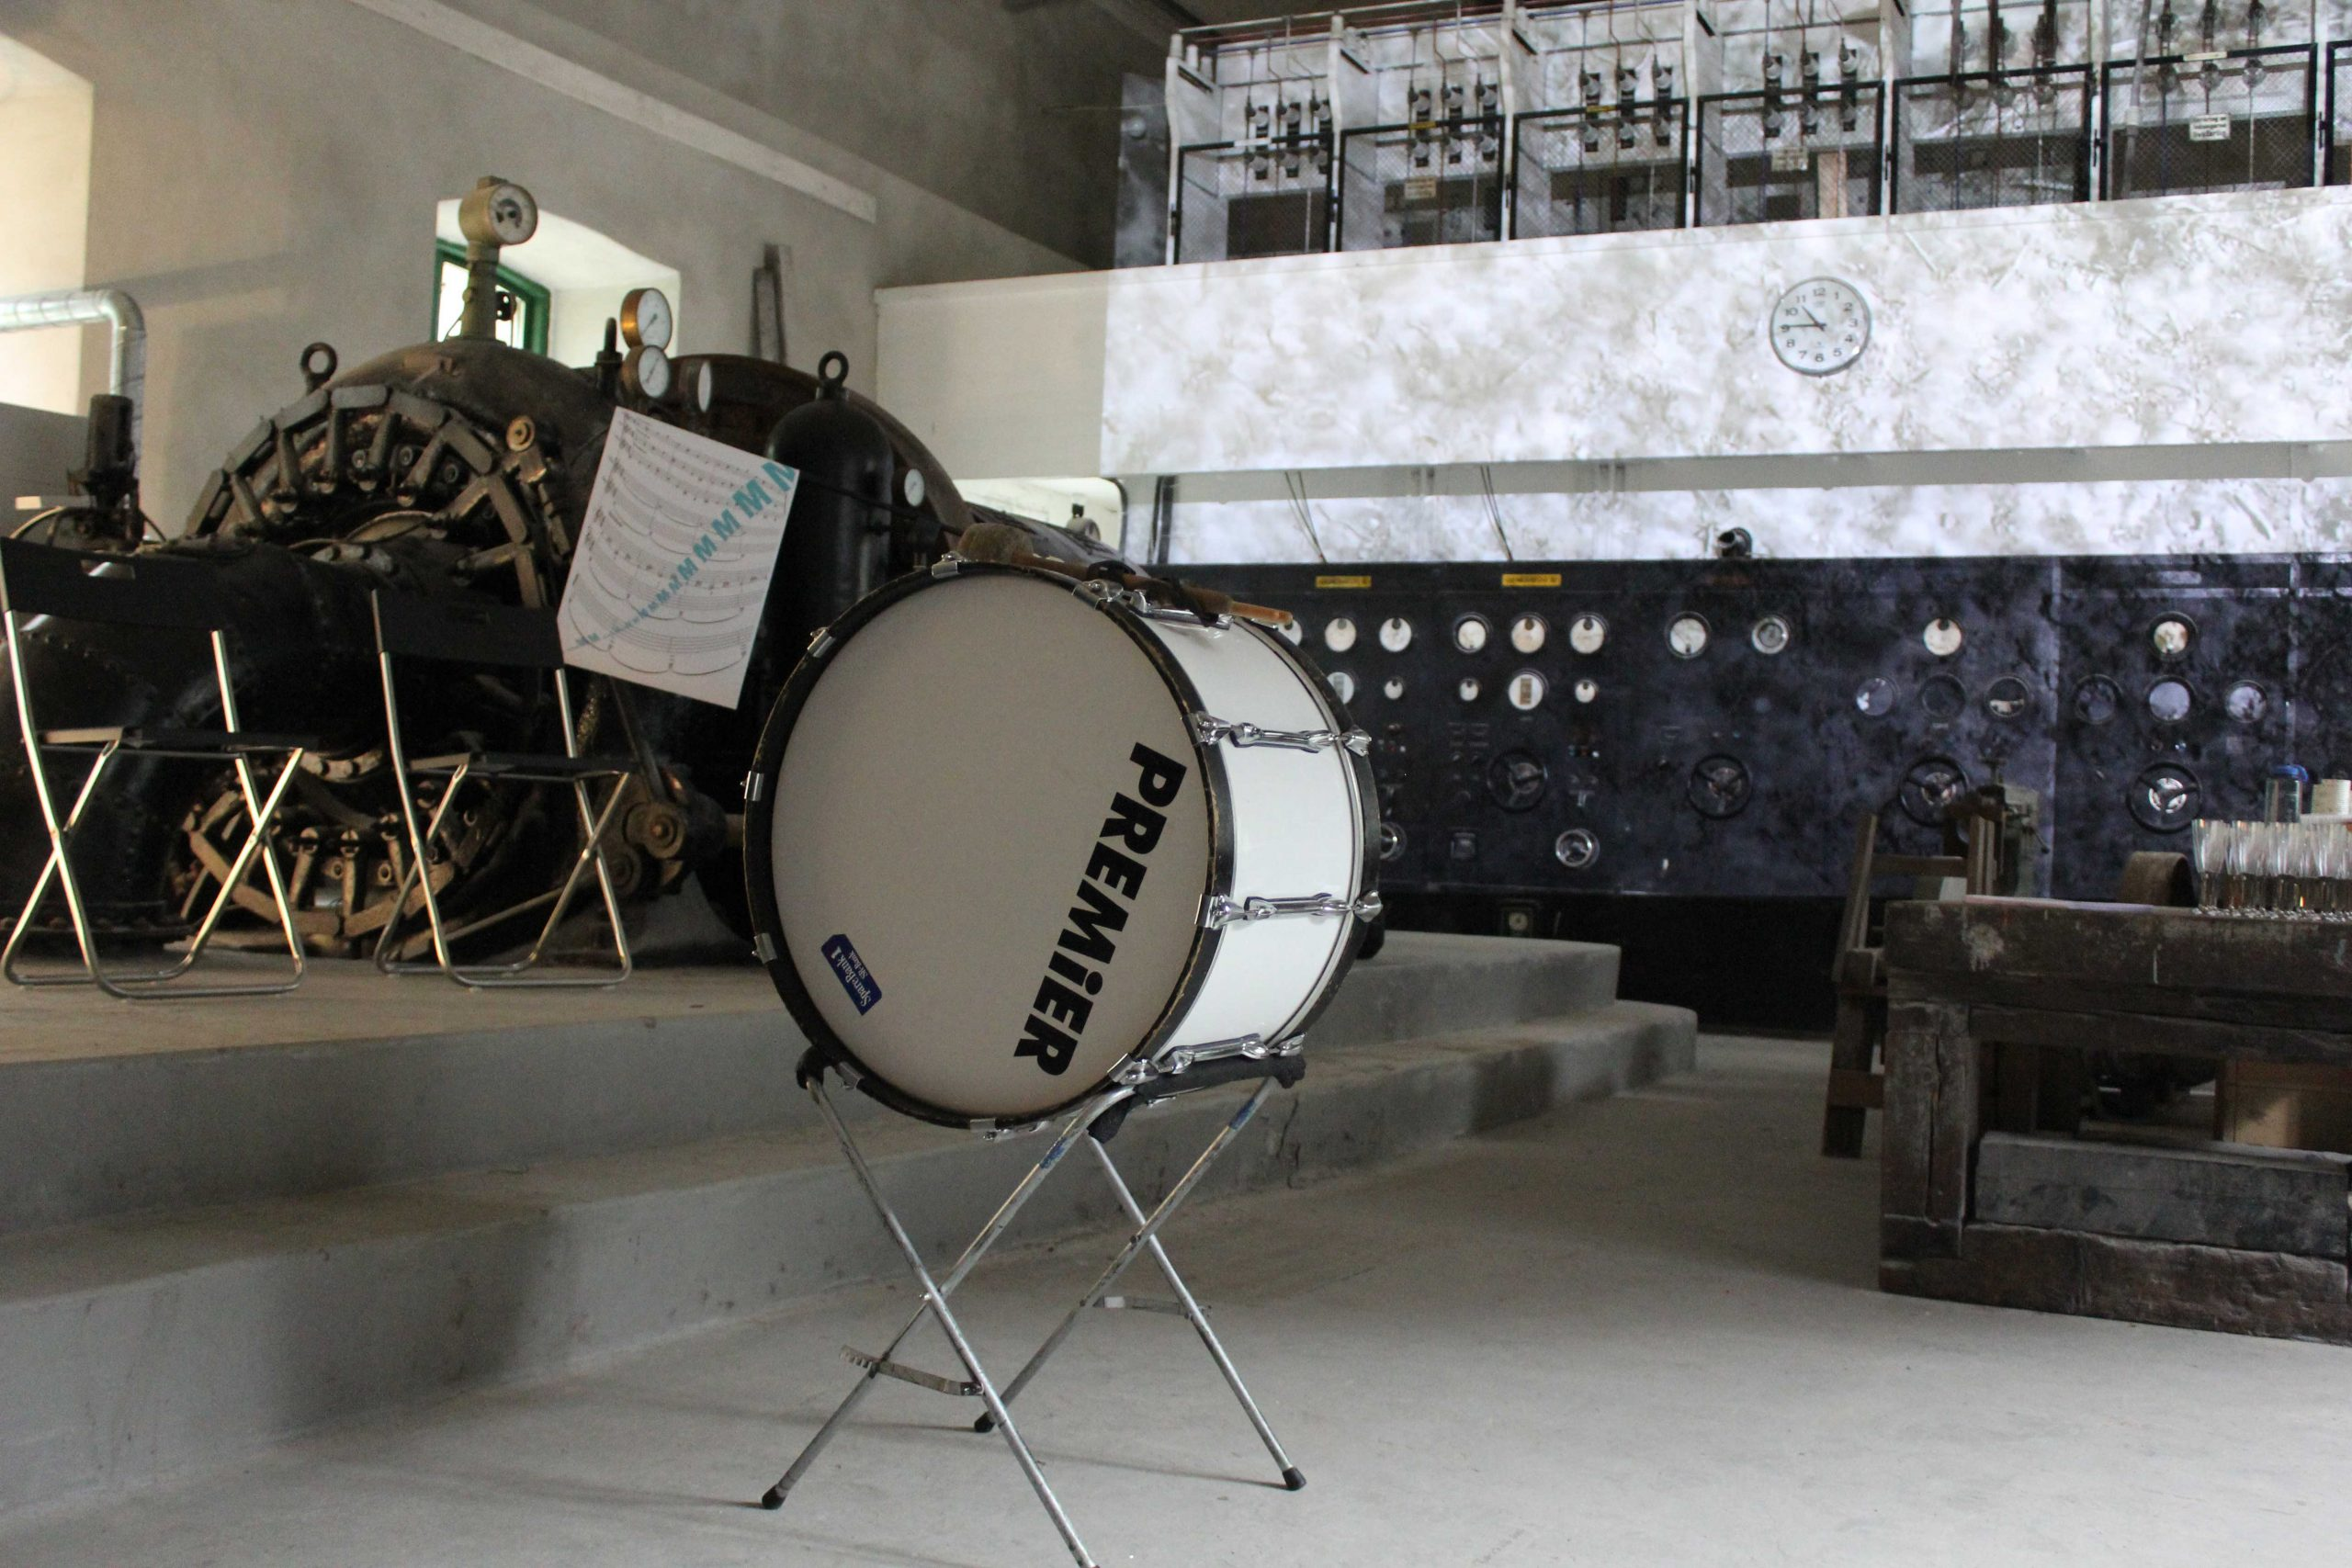 a bass drum on a stand in a room with a projection and equipment in the background